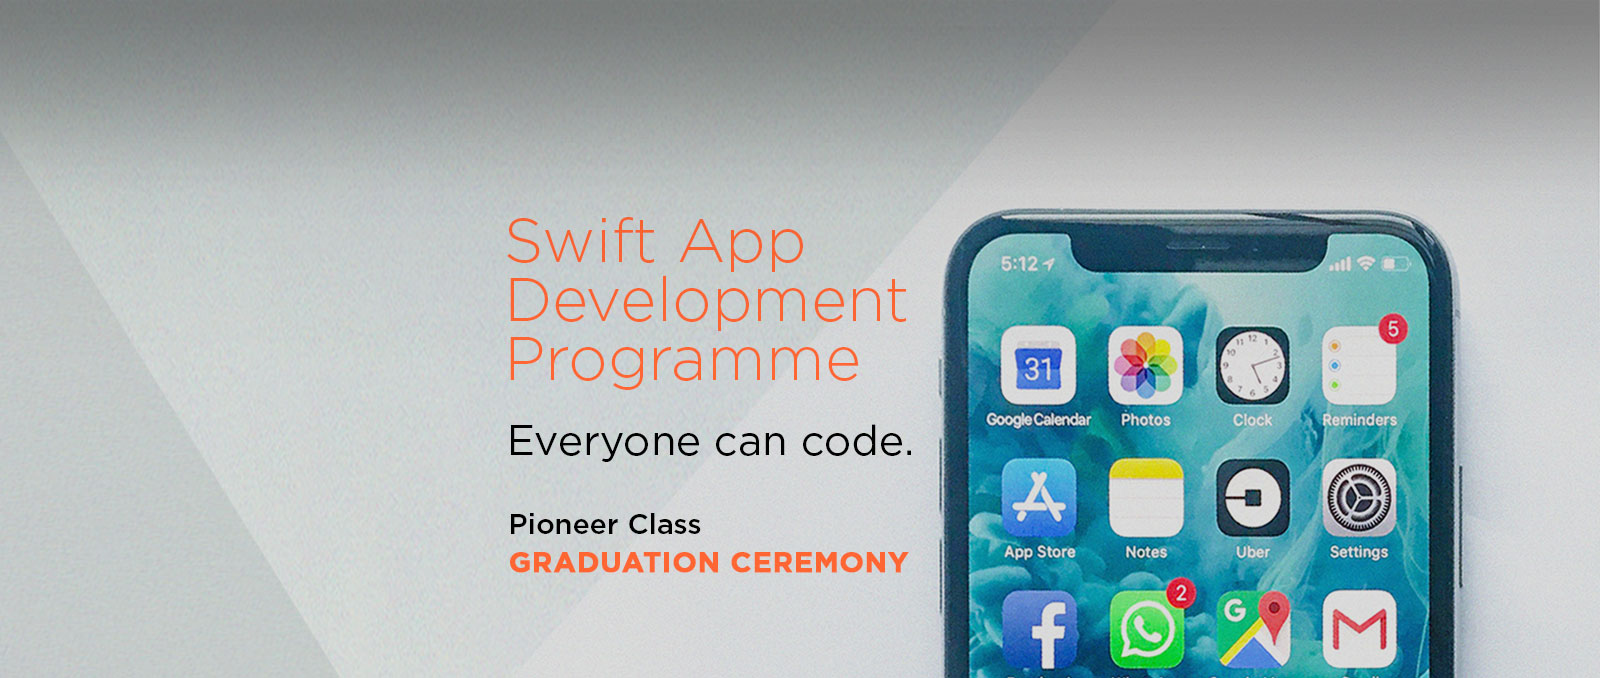 Swift App Development Programme